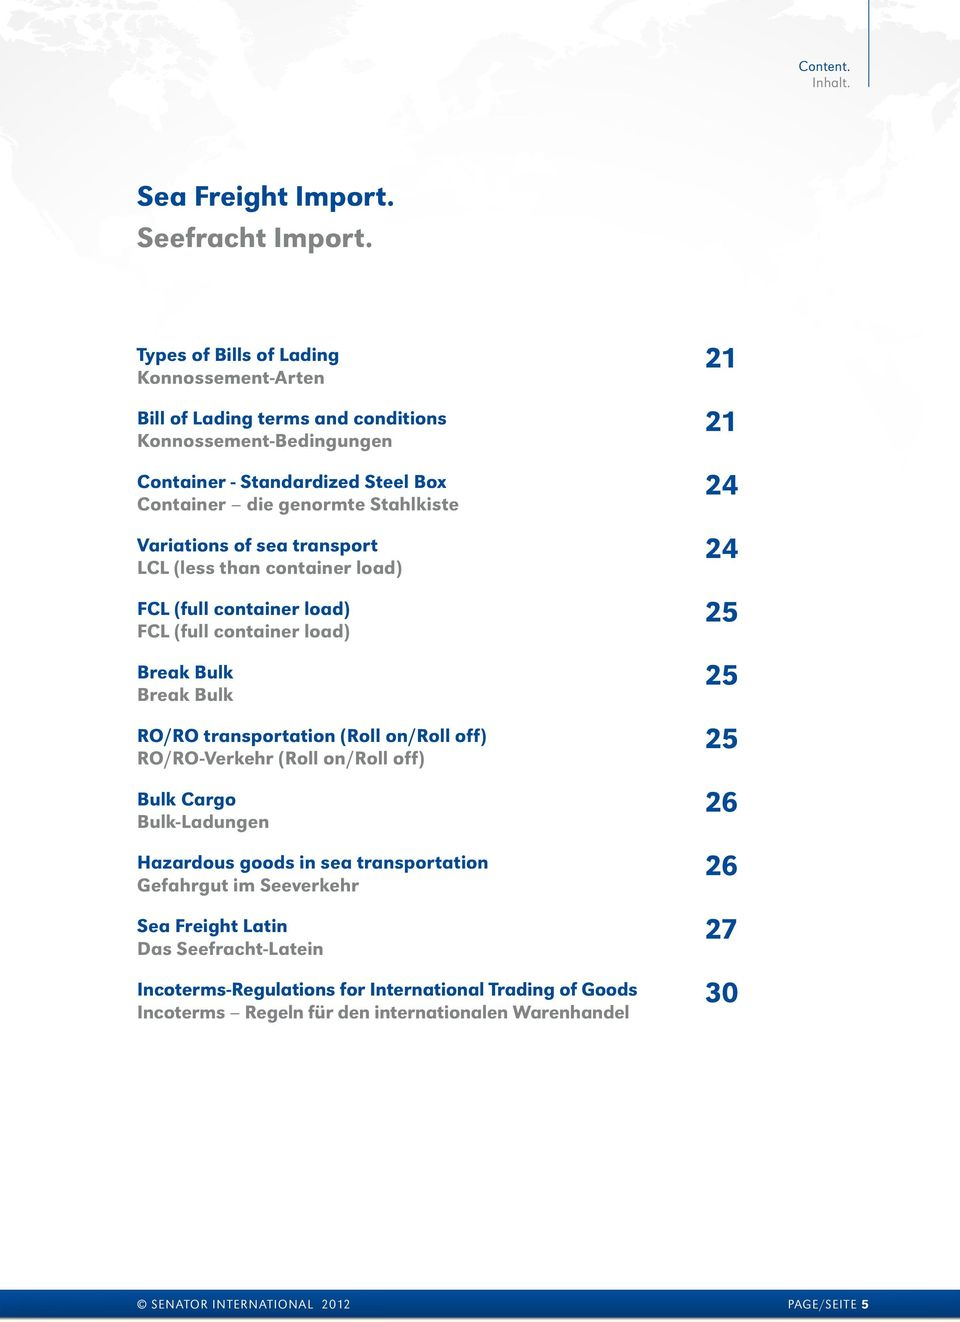 Dictionary of Sea & Air Freight Speditionslexikon für See- und ...